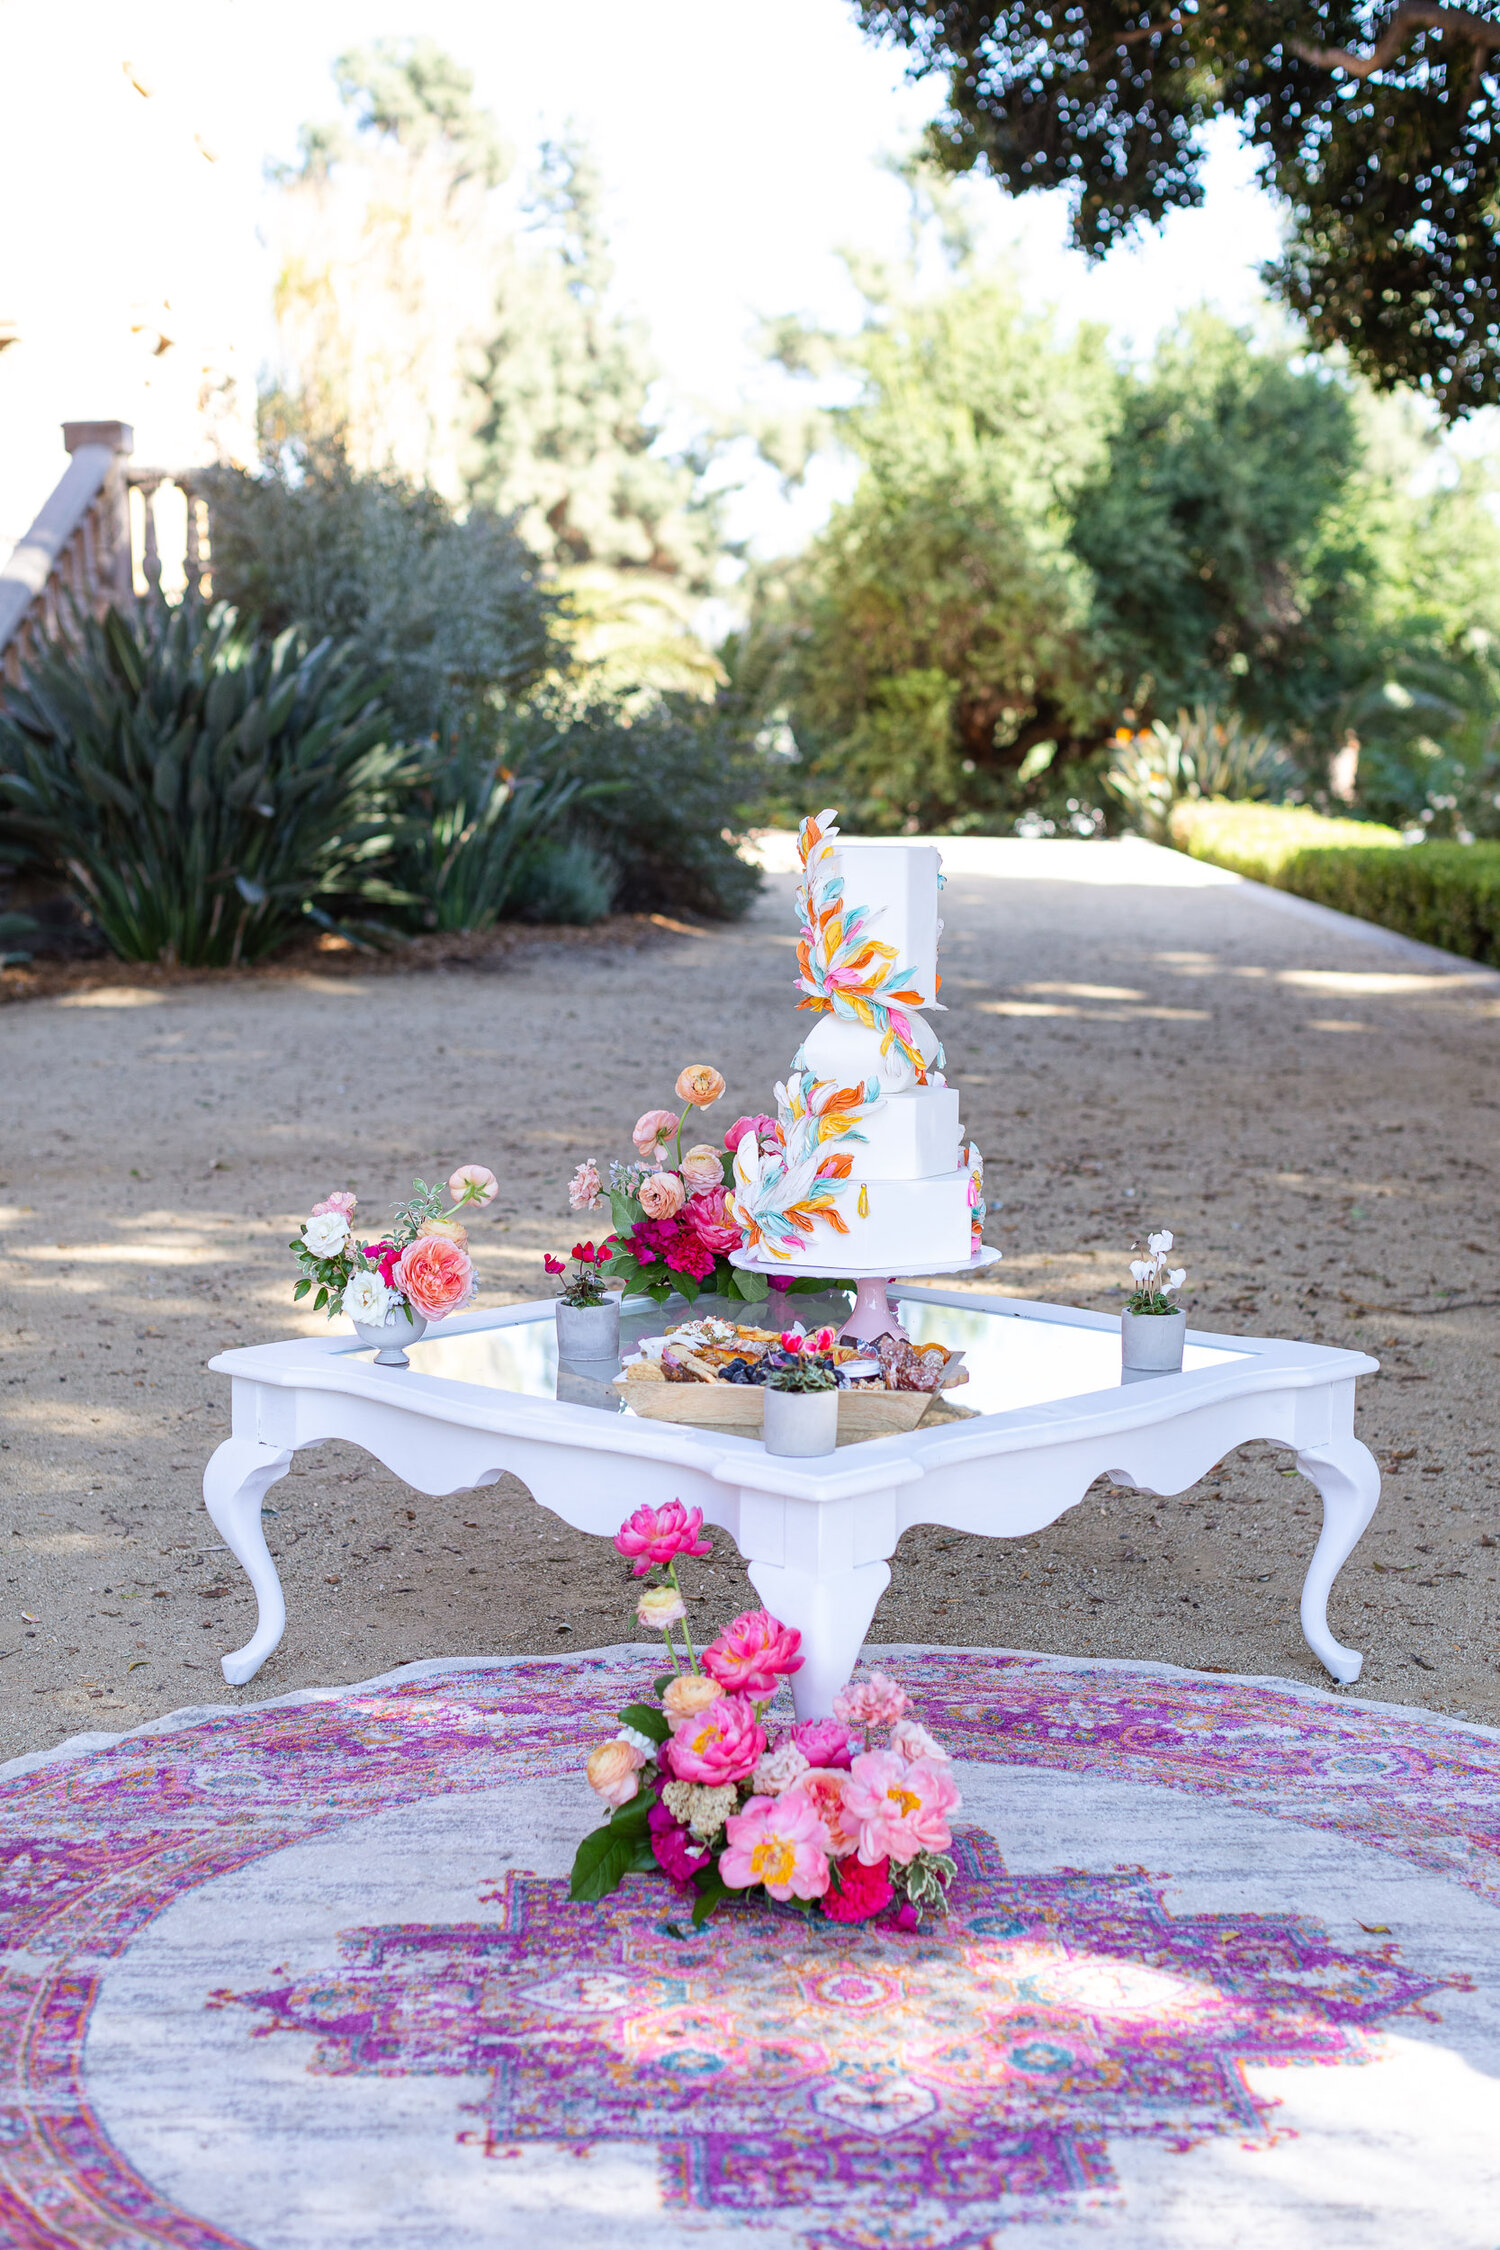 h & l lovely creations bespoke weddings southern california colourful 00008